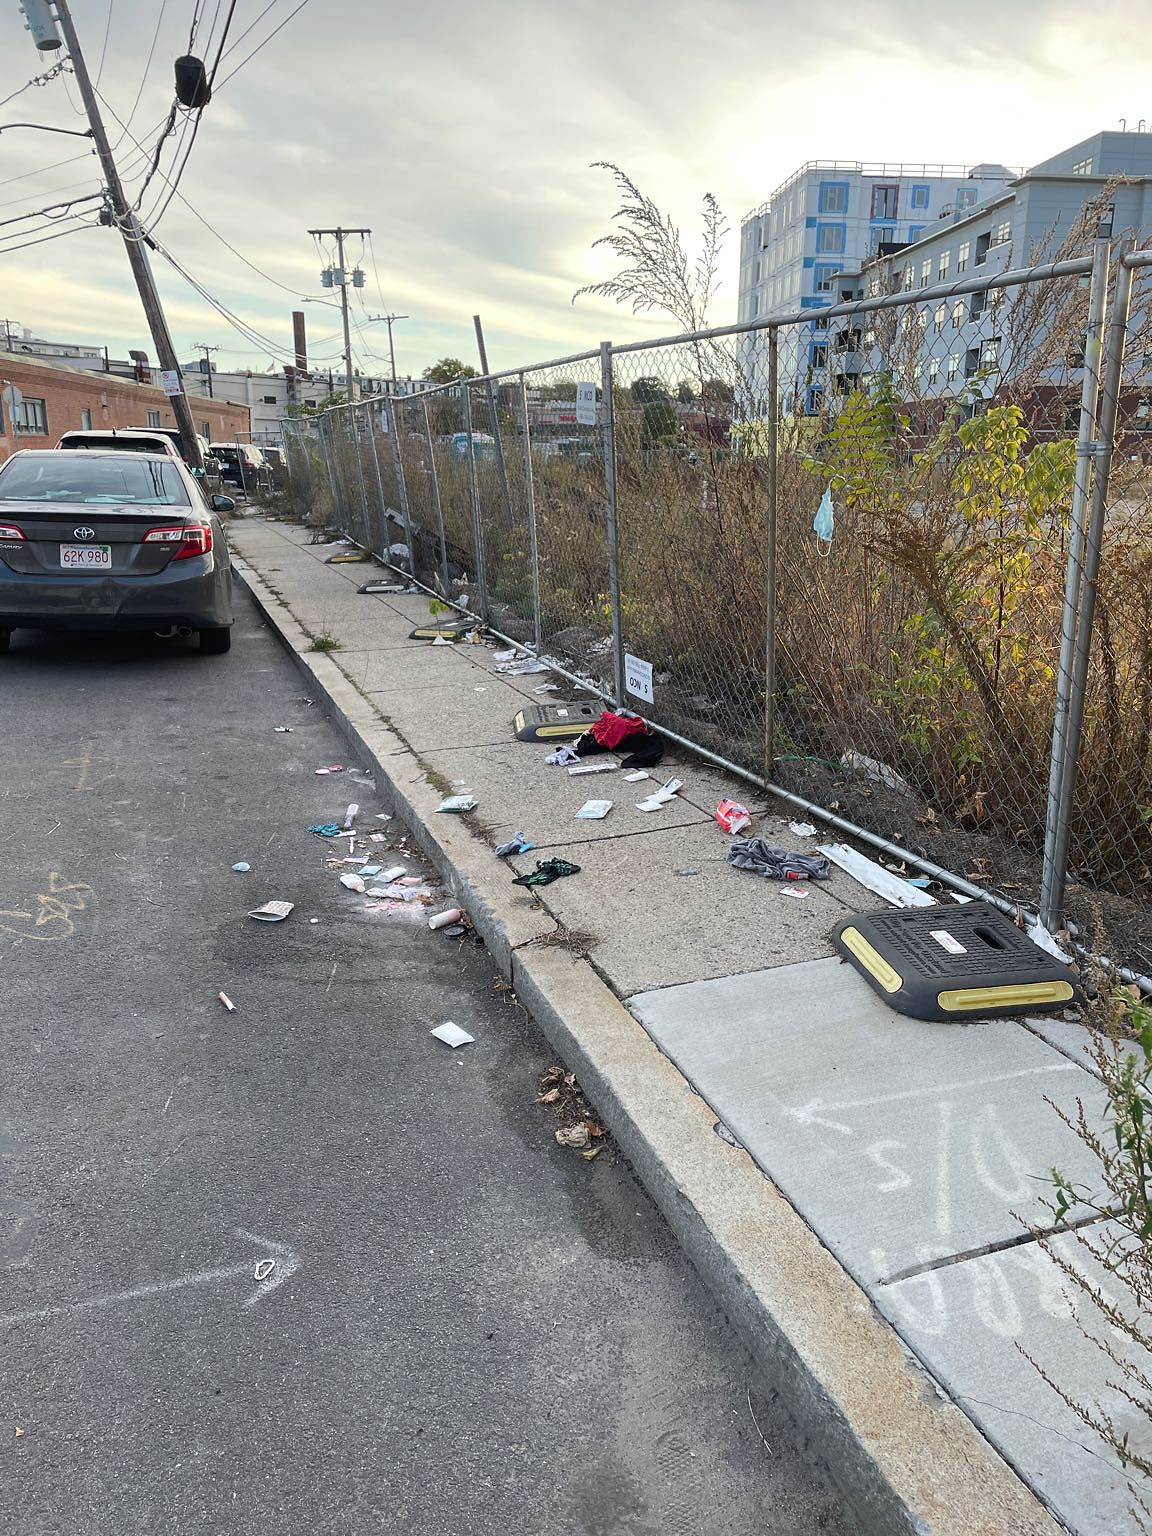 Trade all over the sidewalk (in addition to the lot being totally unmaintaned and disgusting)